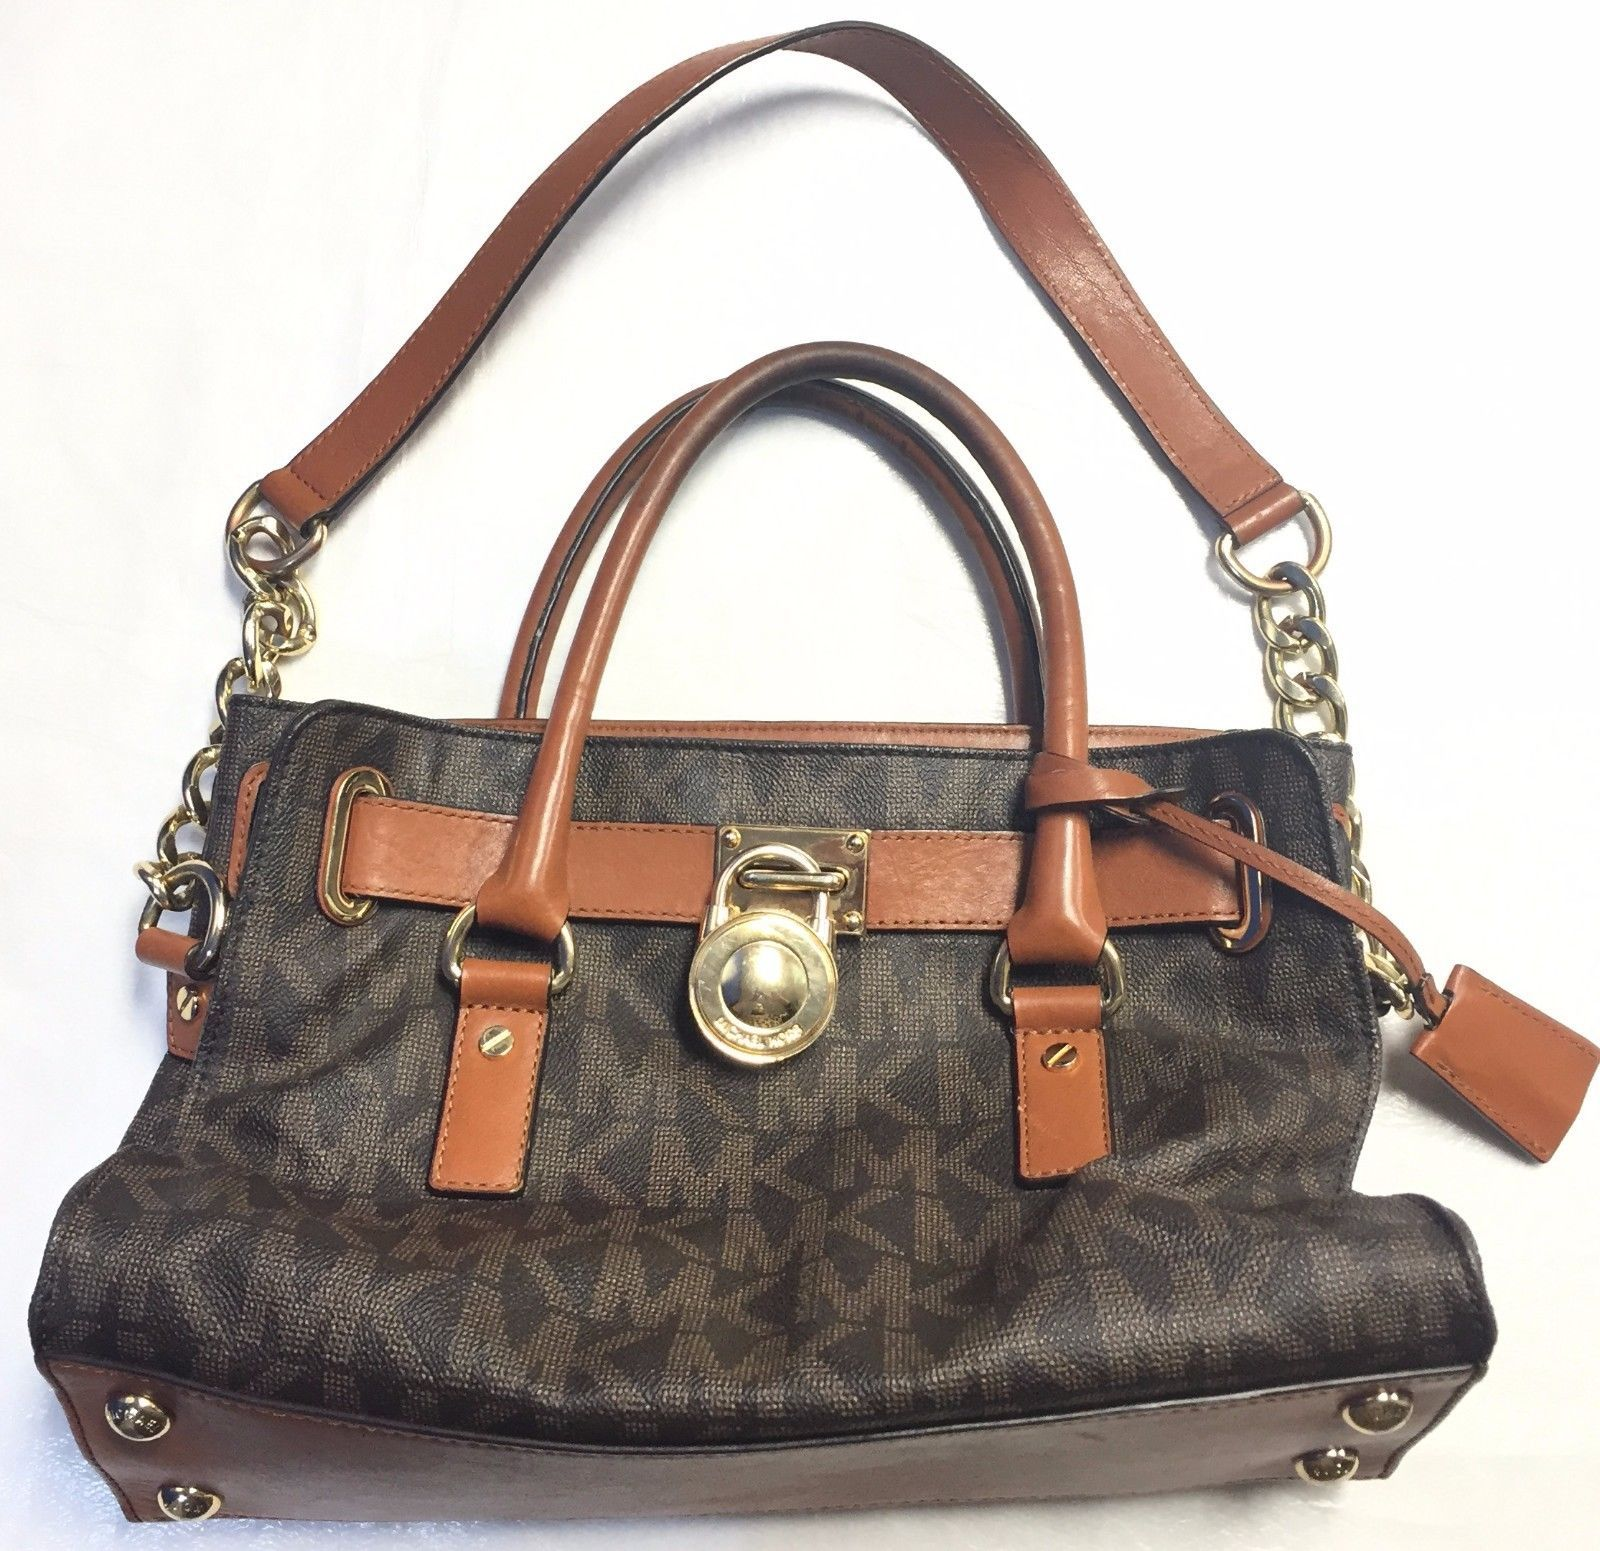 fdf9ebdca0c6df Michael Kors Hamilton Large Logo Tote Bag W/ and 38 similar items. S l1600